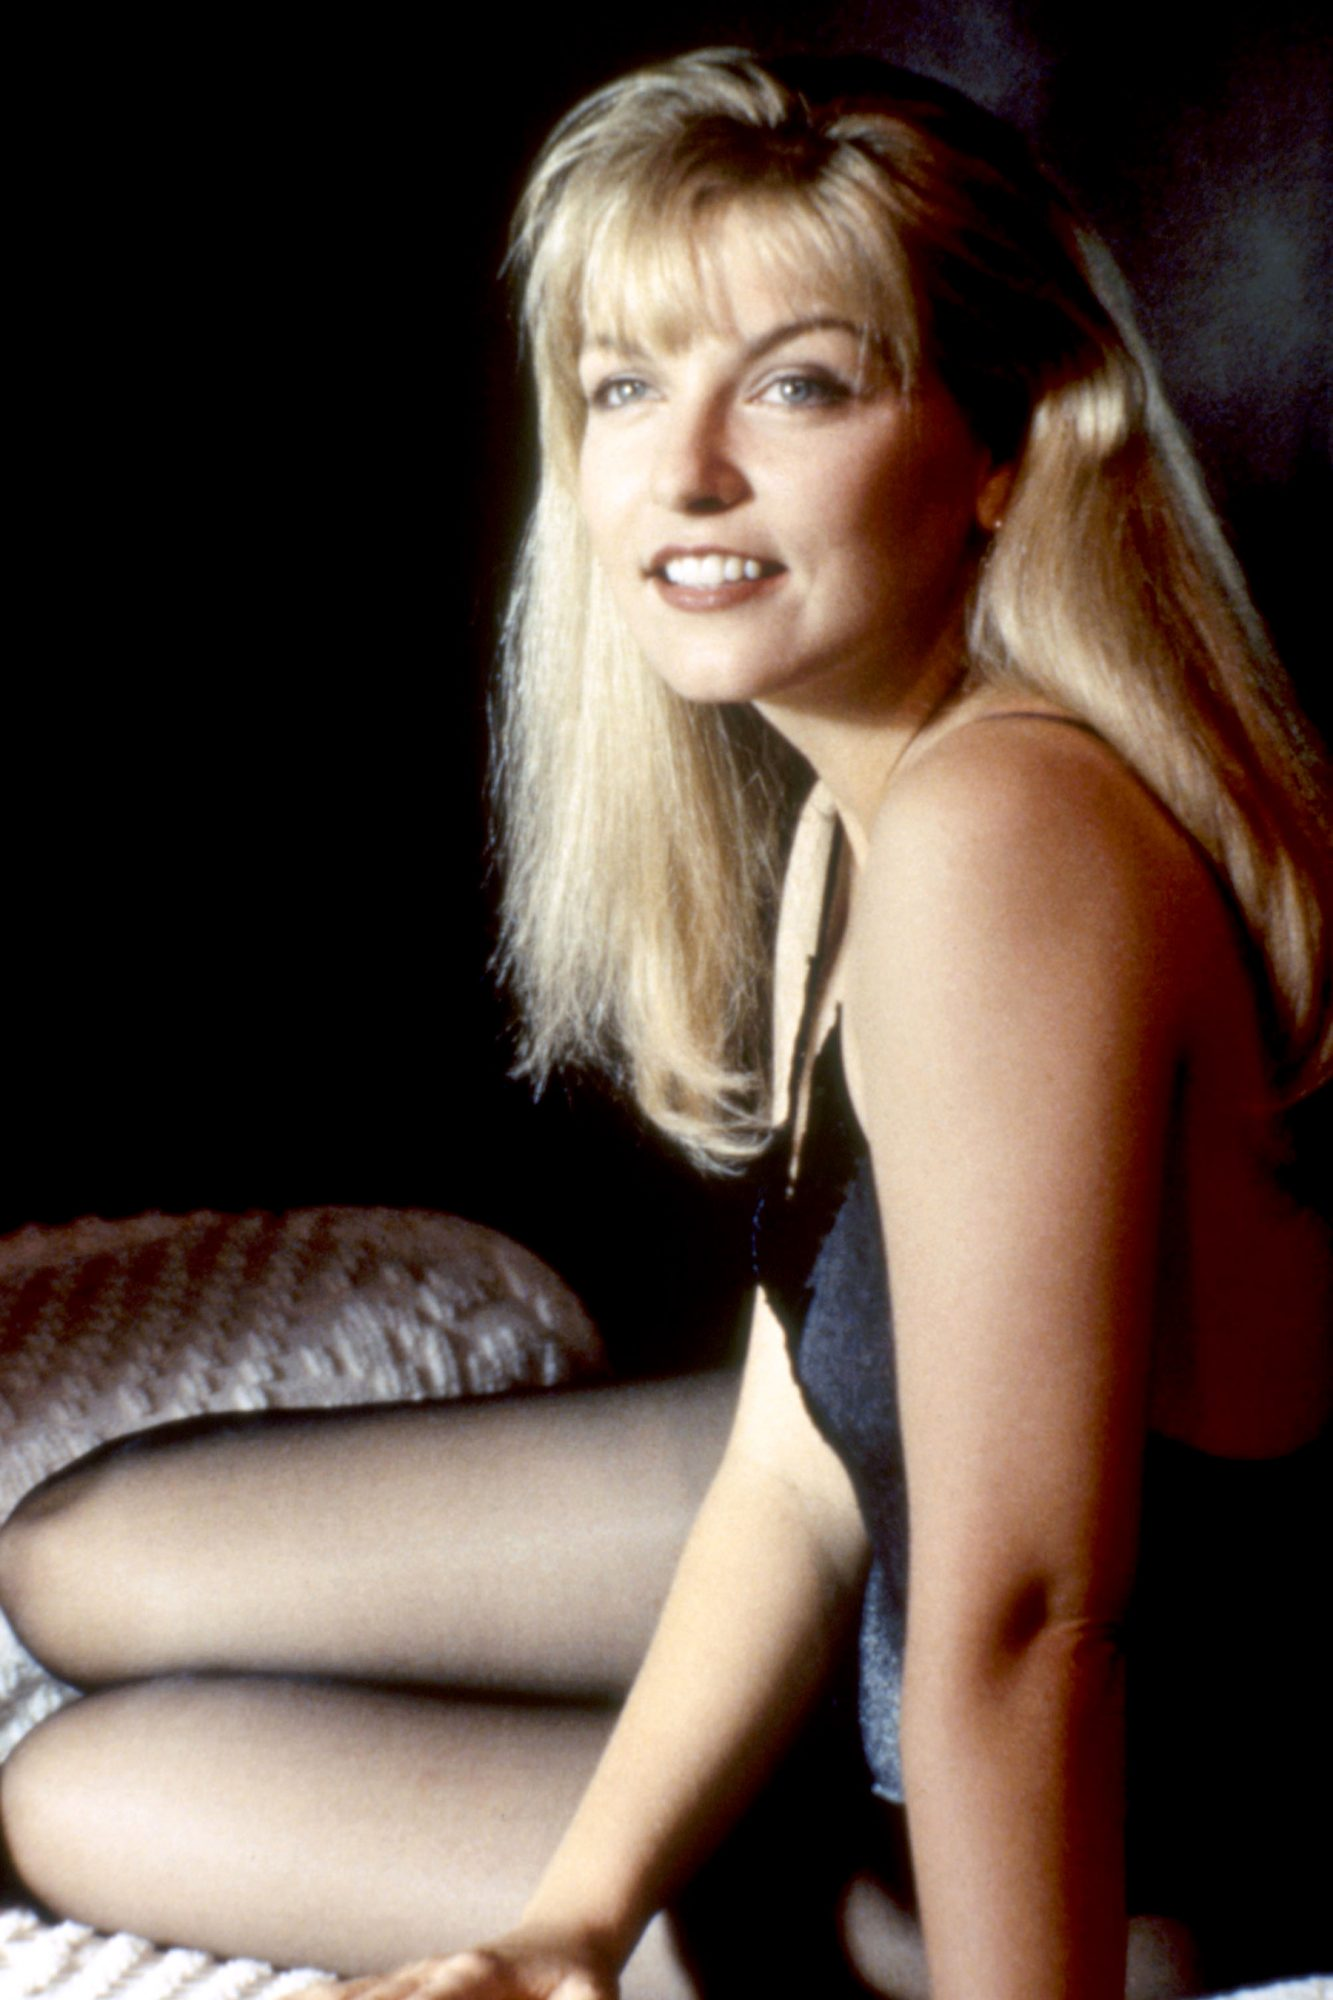 TWIN PEAKS: FIRE WALK WITH ME, Sheryl Lee, 1992, (c)New Line Cinemas/courtesy Everett Collection